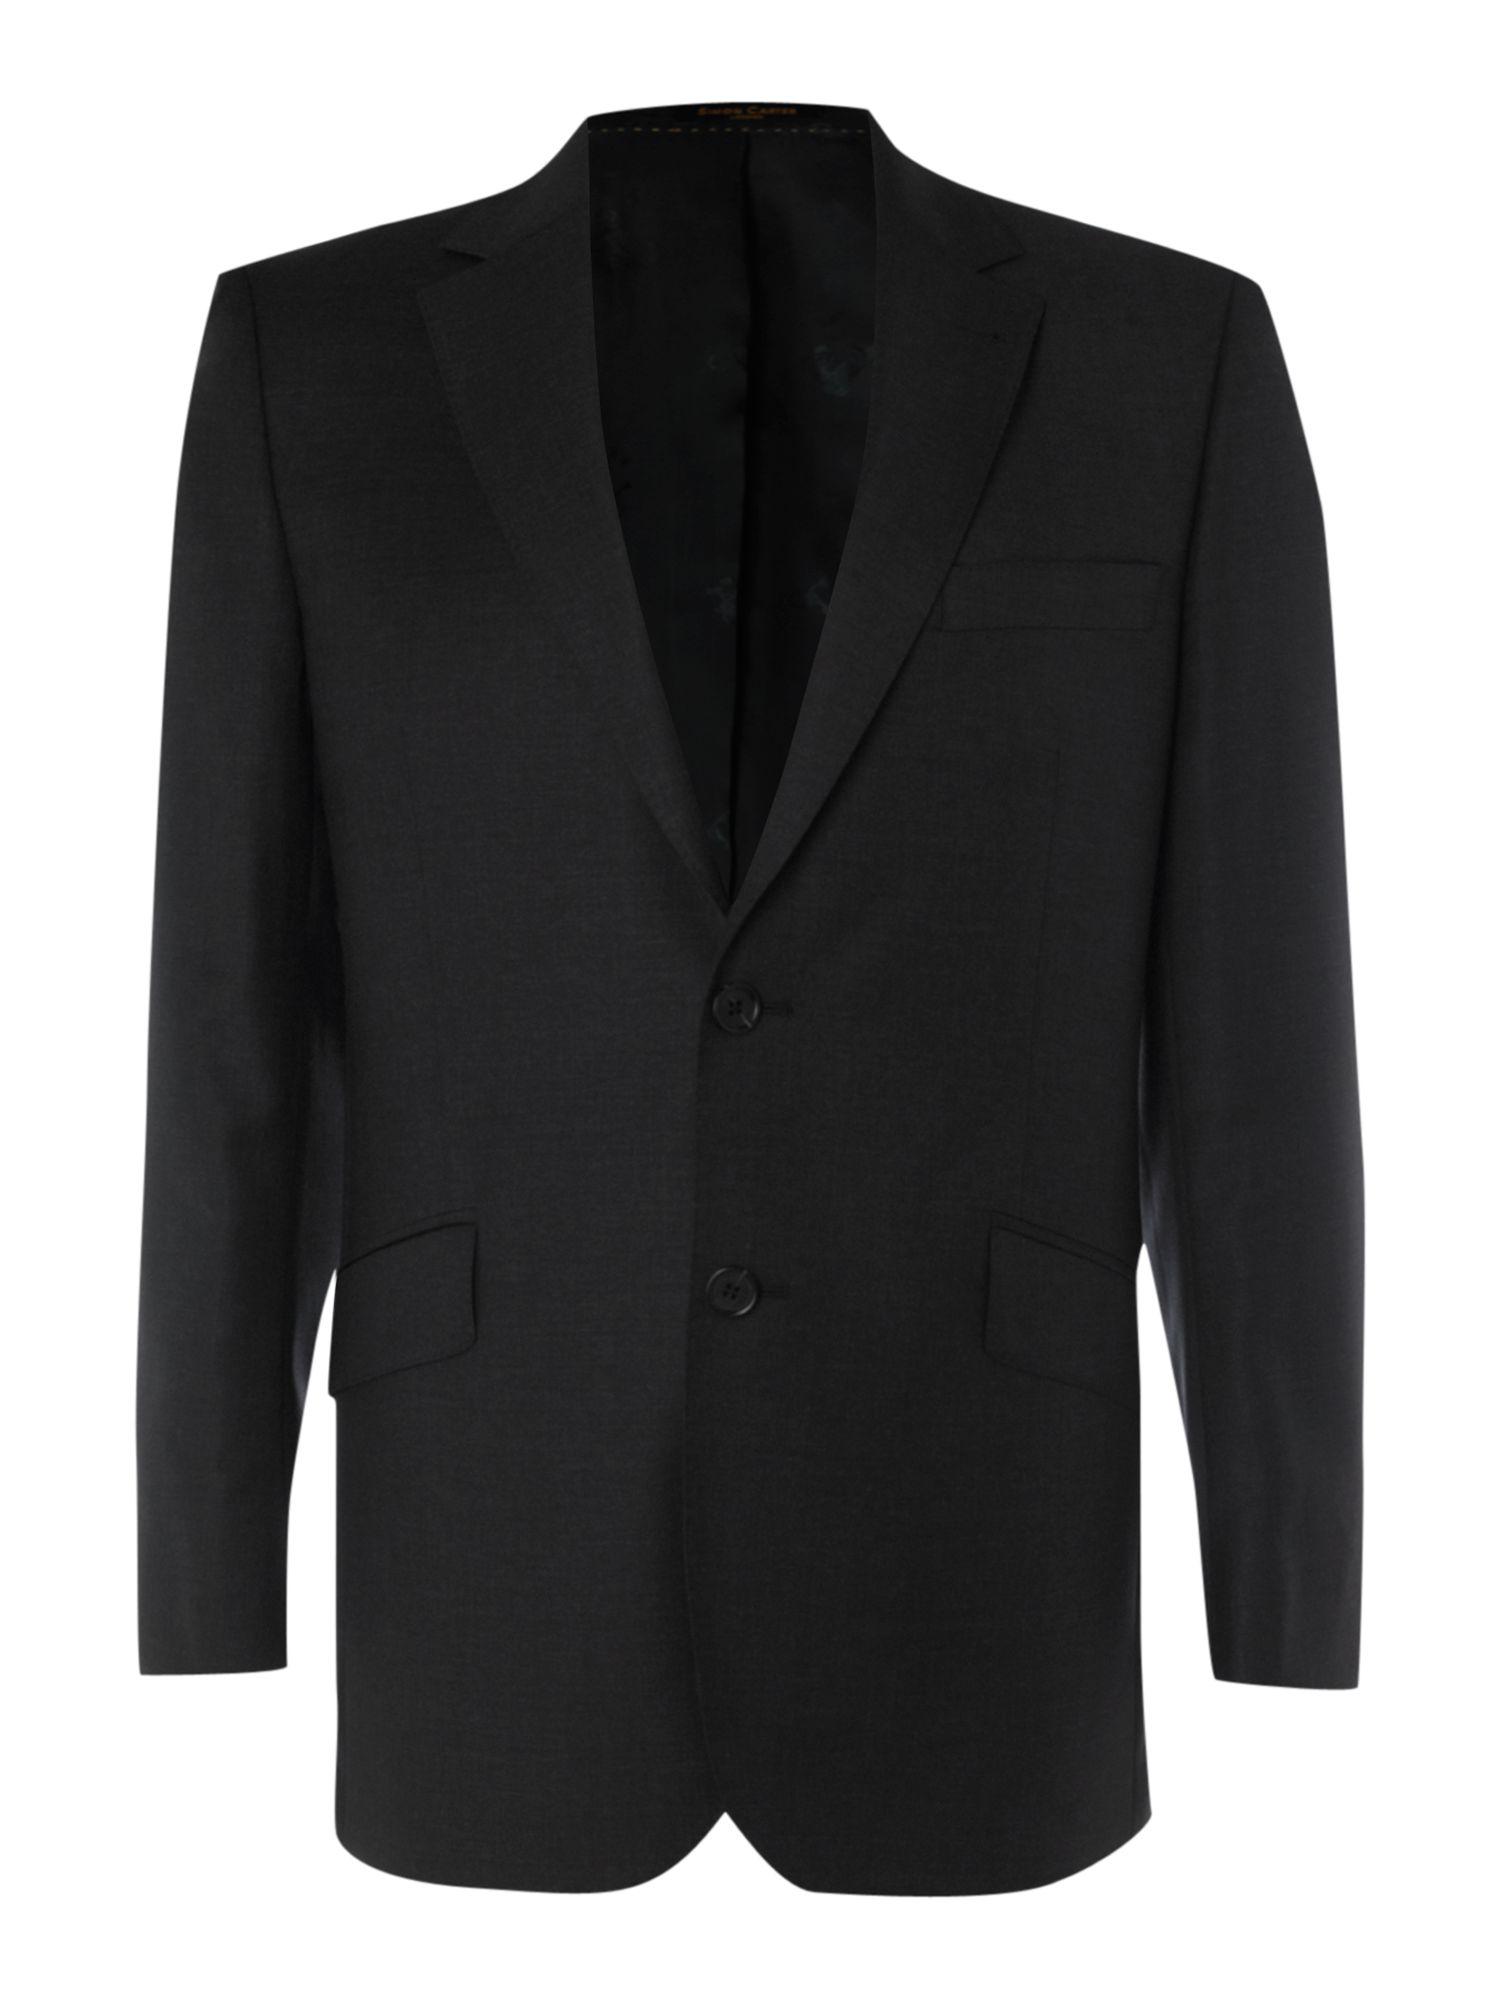 mixer suit jacket